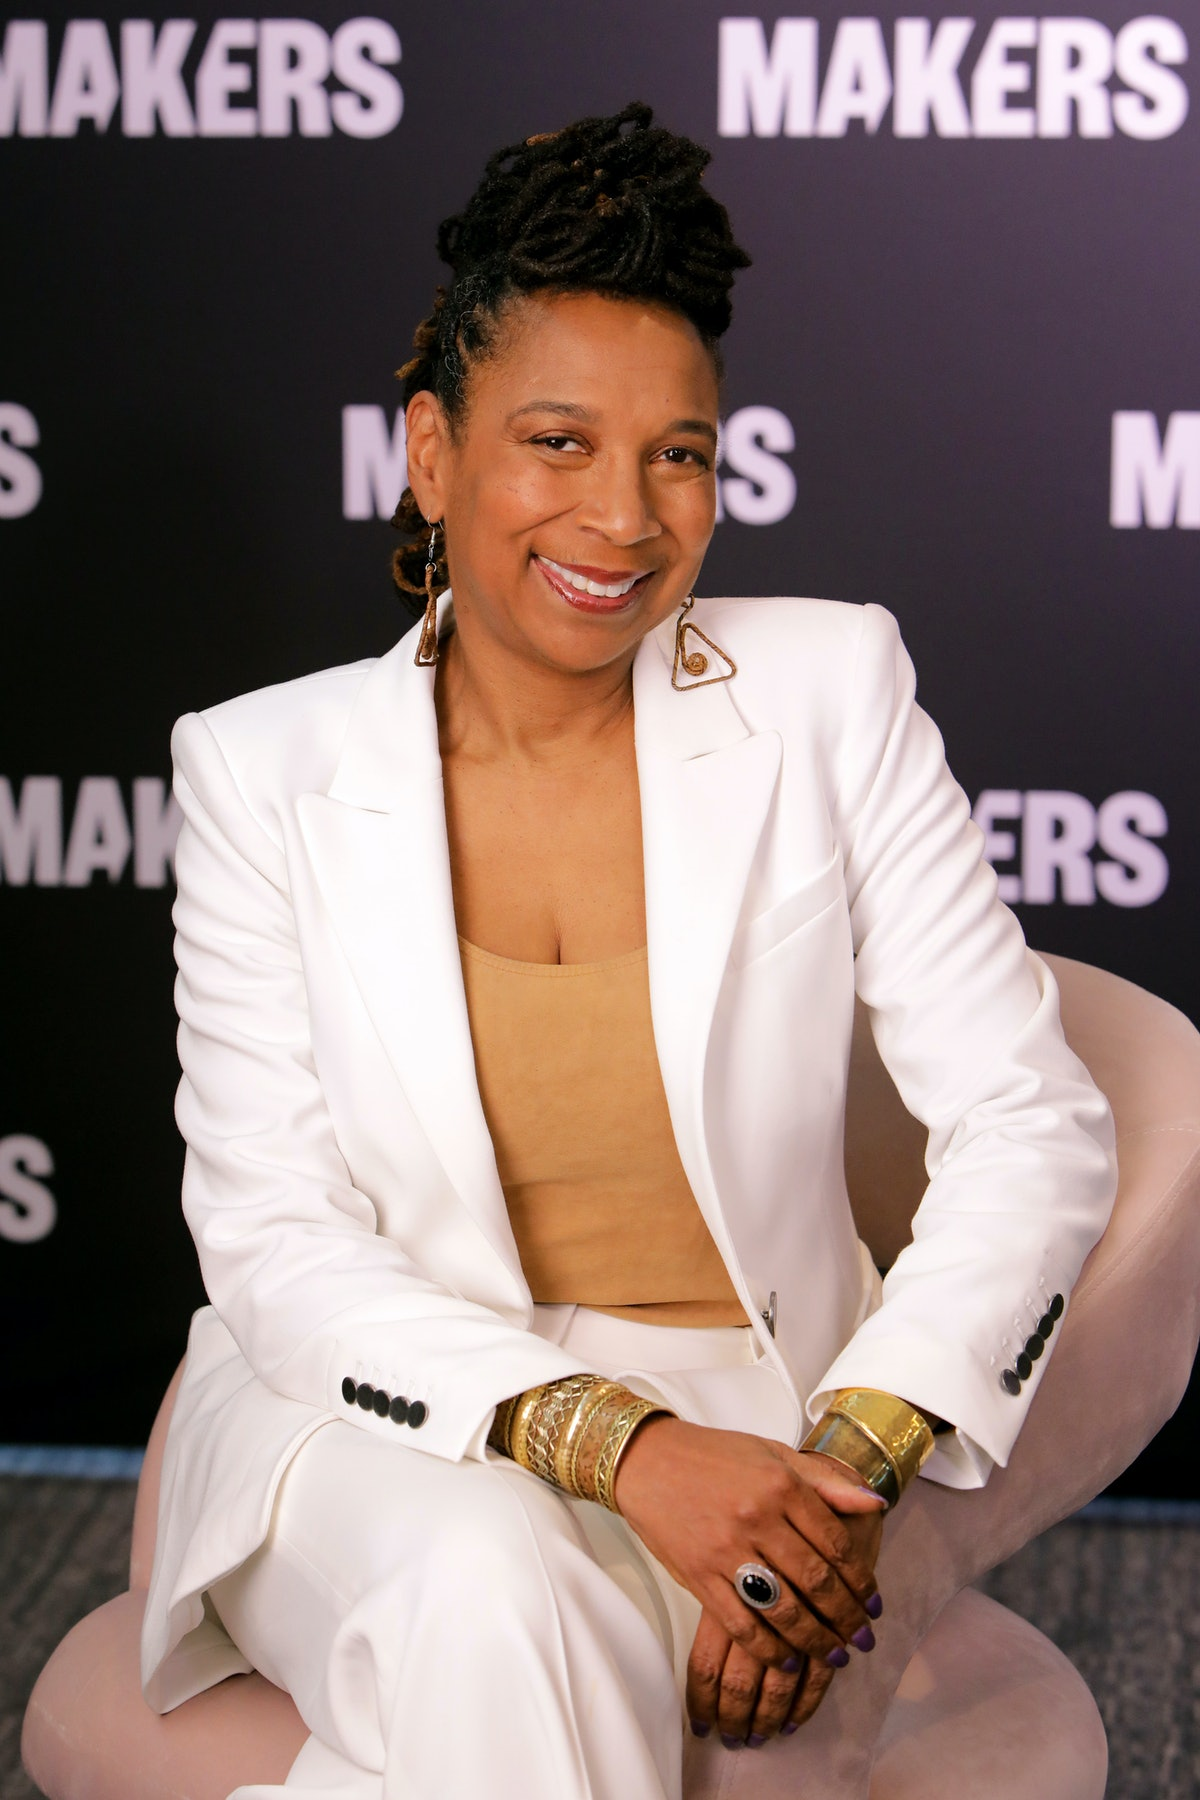 You can follow Black female activists like Kimberlé Crenshaw on Instagram to learn more about dismantling structural inequality.